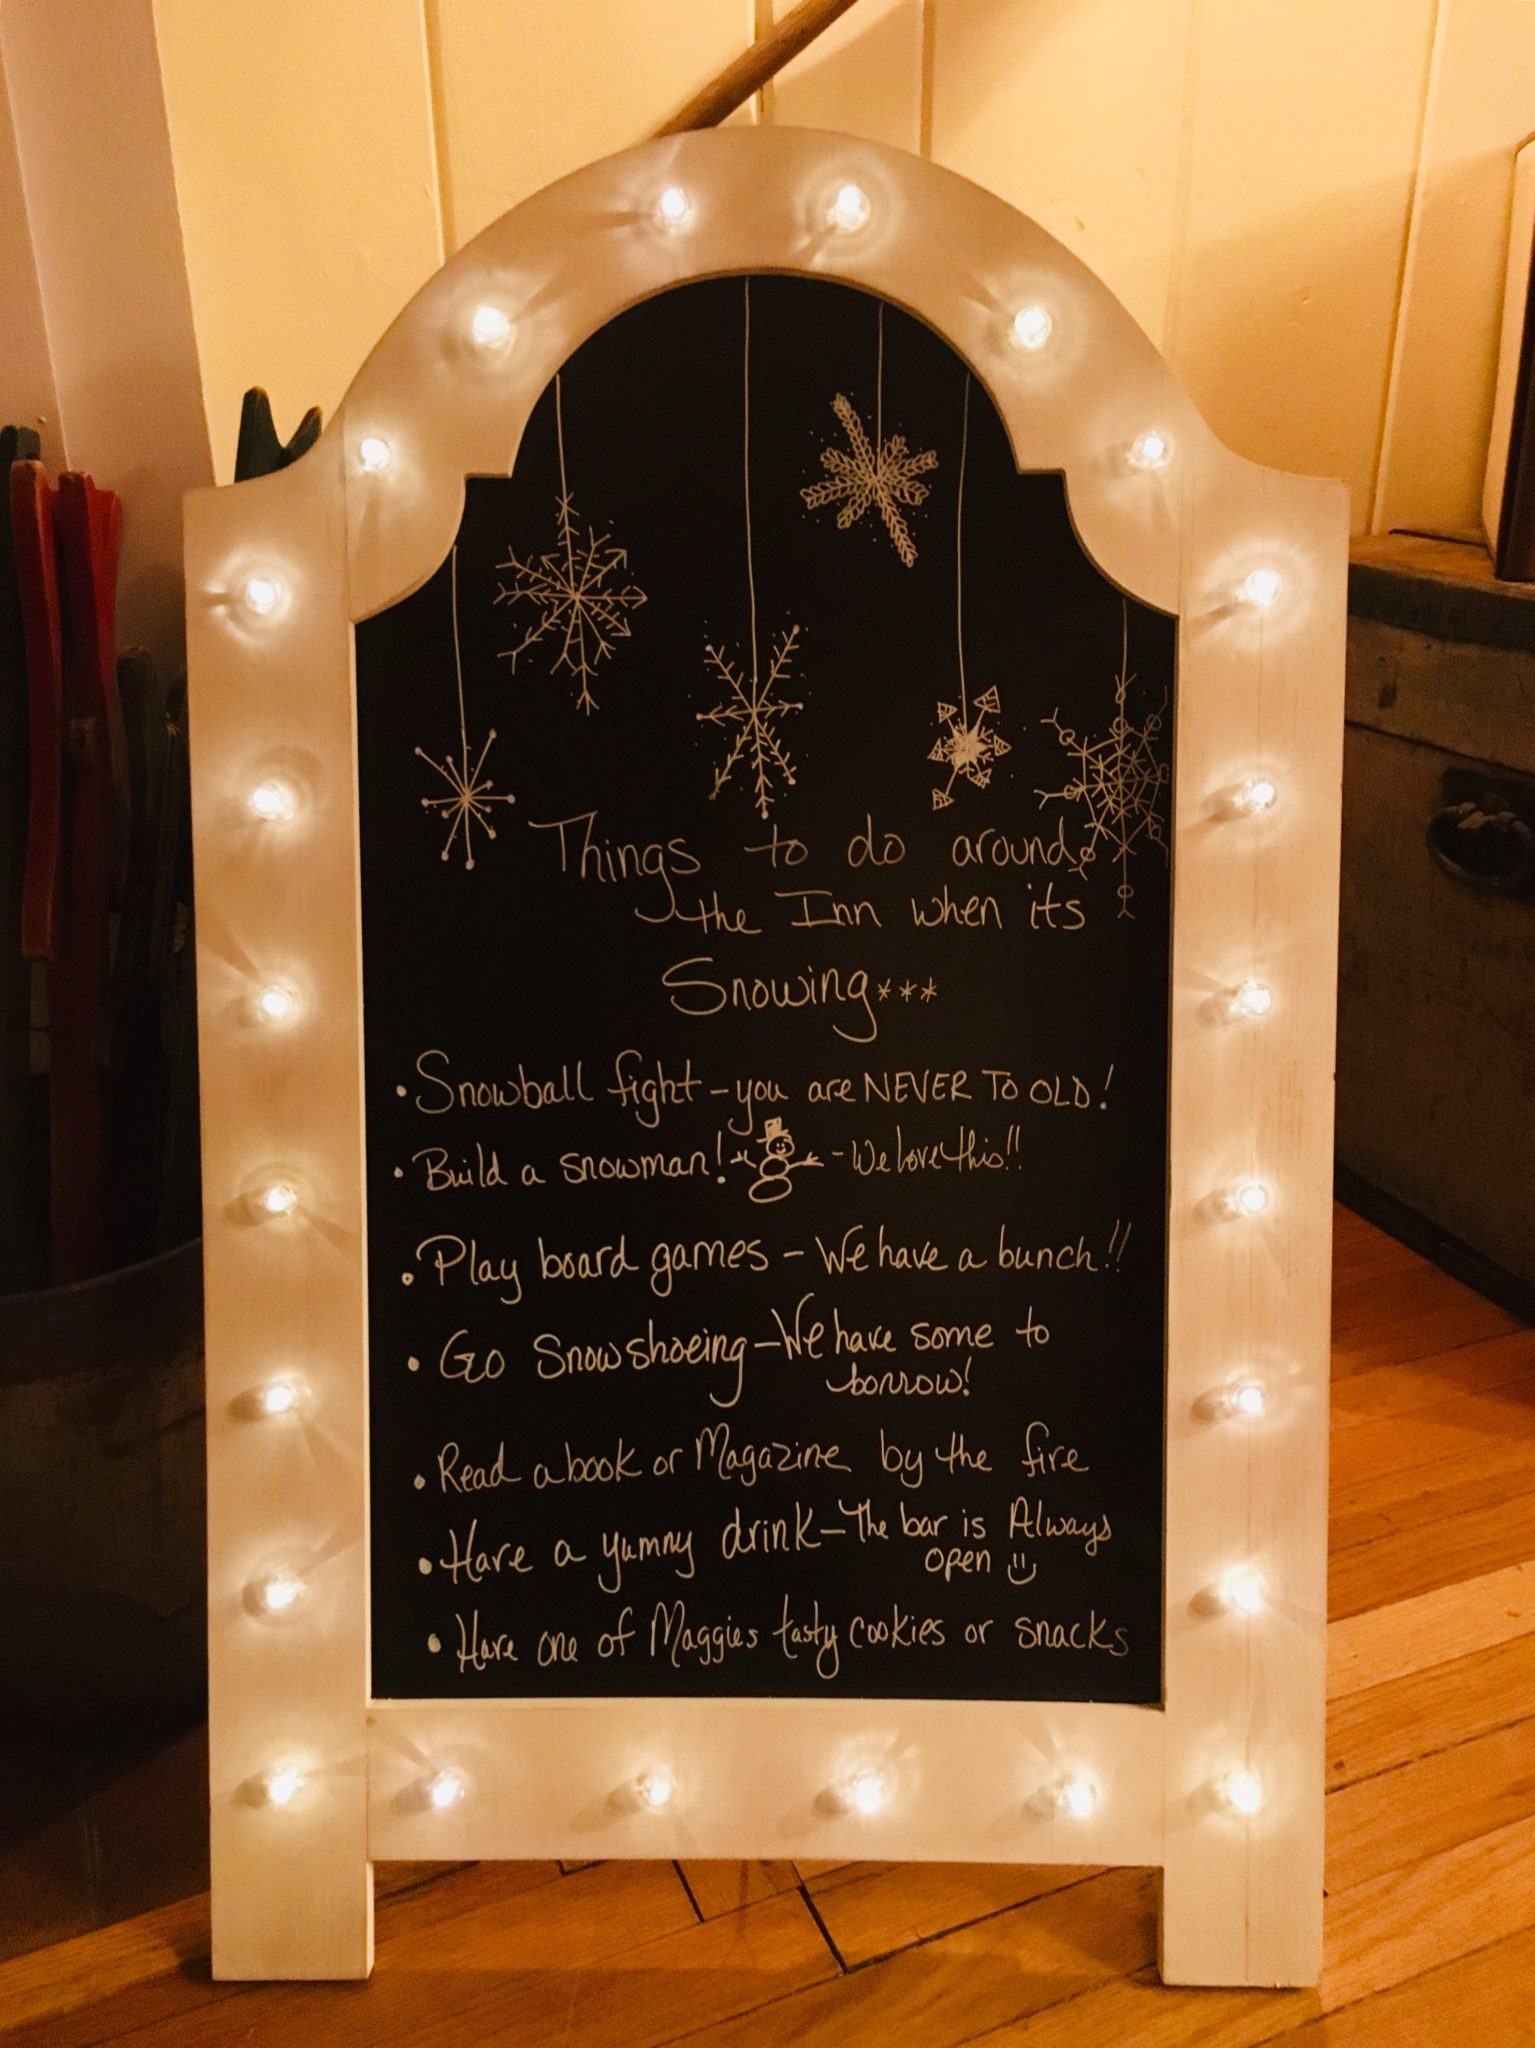 chalkboard sign listing winter activities at the inn